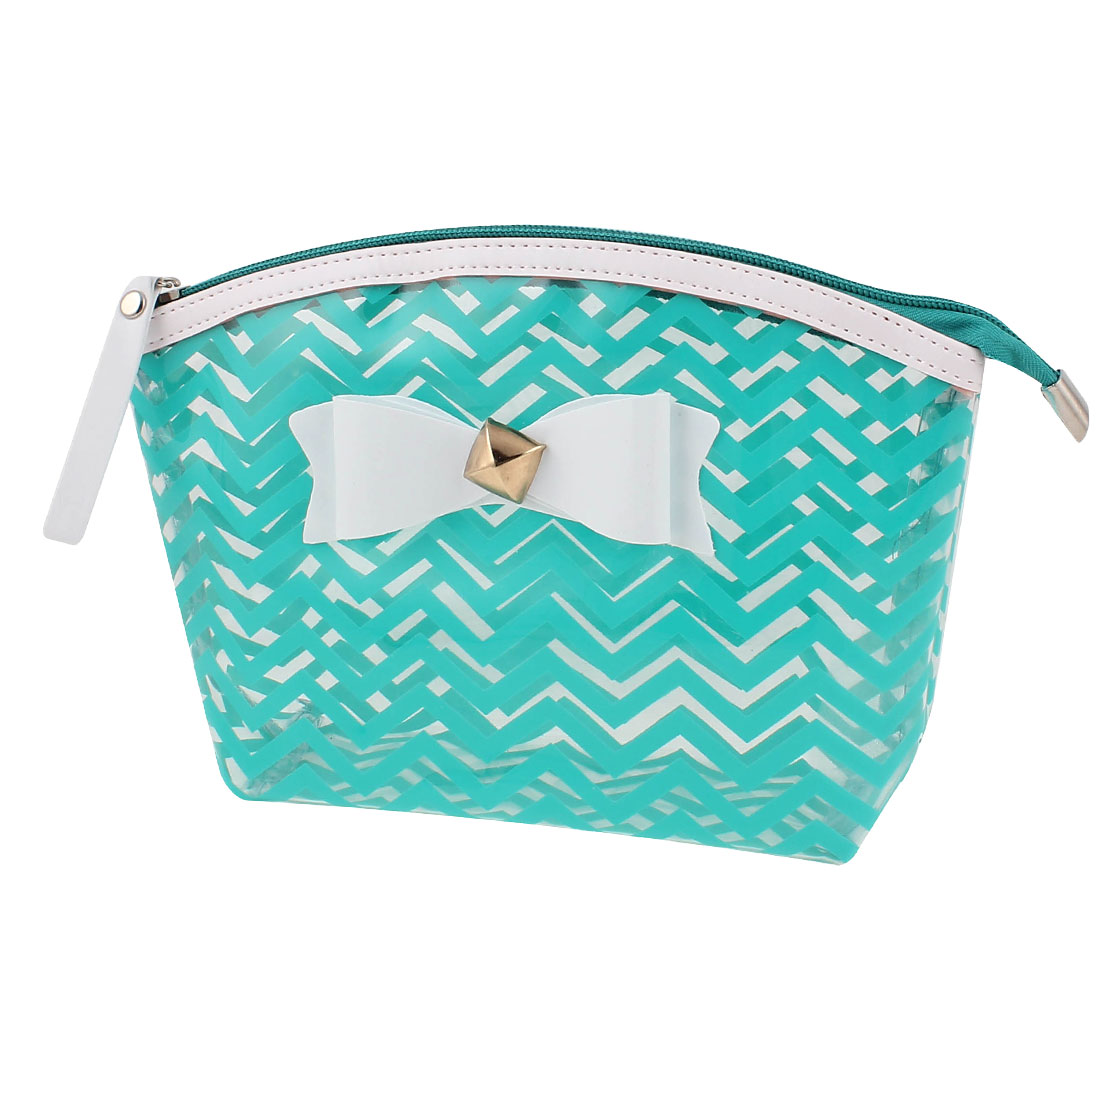 Woman Travel Portable Zipper Closure Bowknot Decor Green Wave Line Pattern PVC Cosmetic Makeup Bag Toiletries Sundrise Holder Organizer Handbag